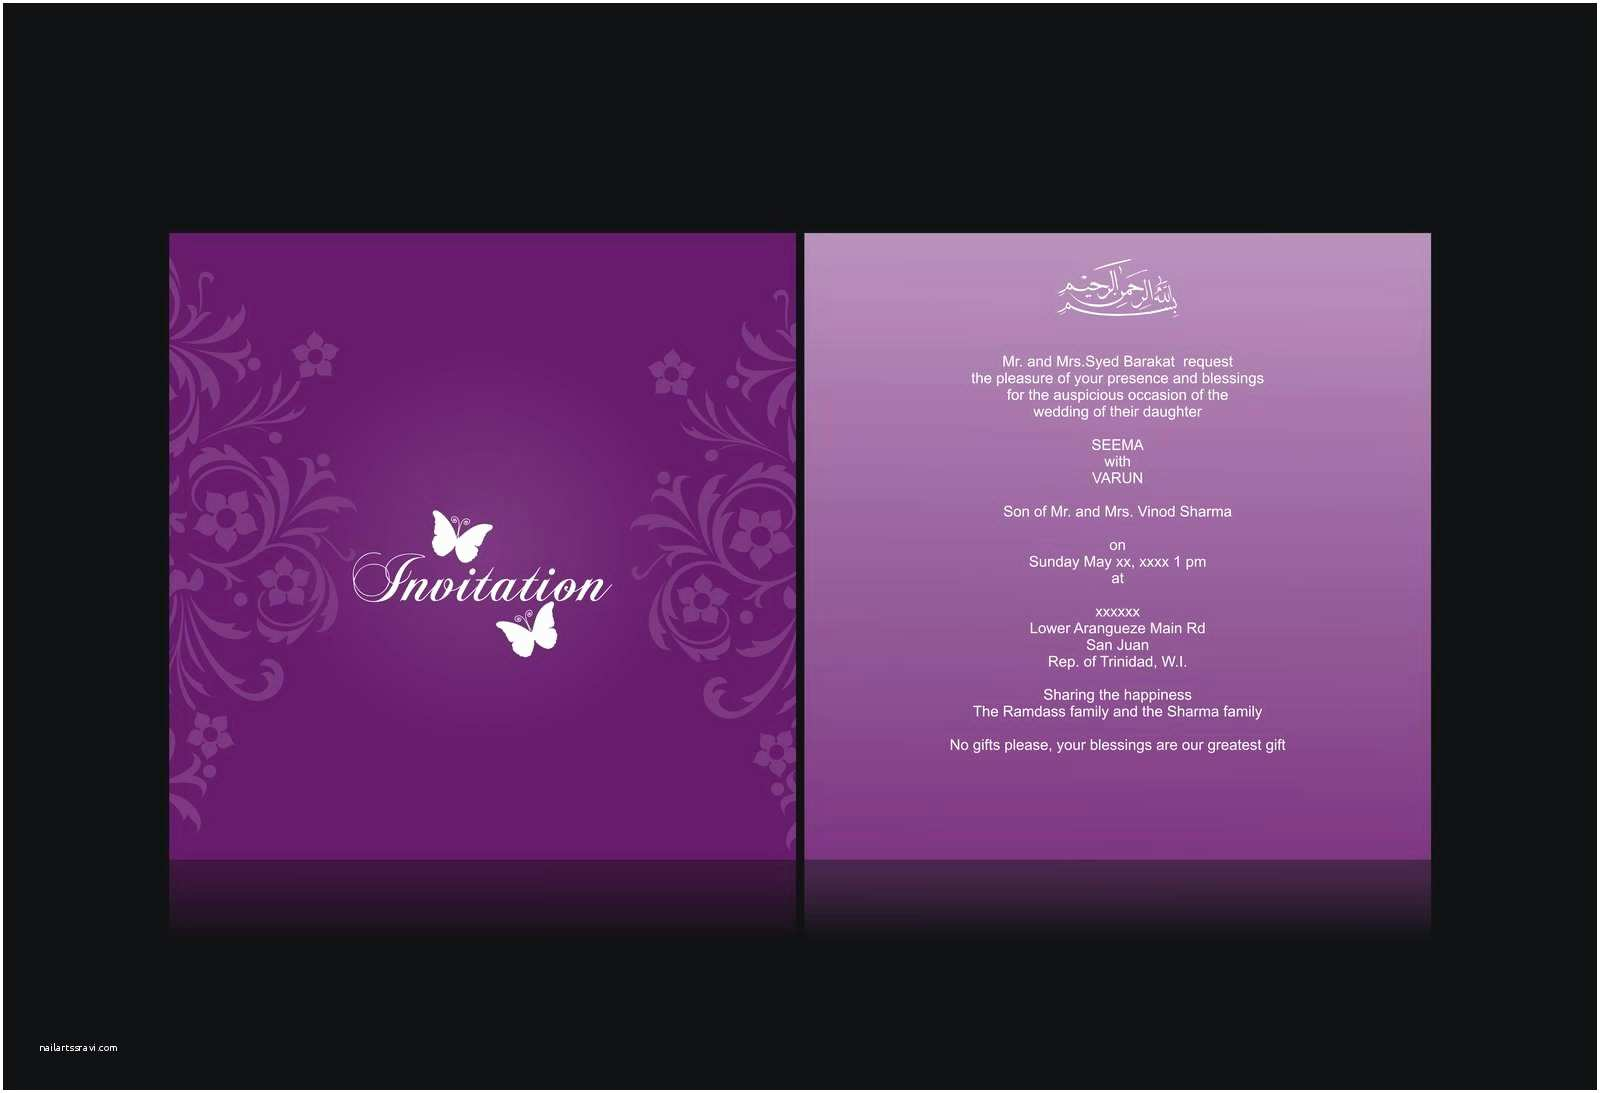 Picture Wedding Invitations Wedding Card Invitation Free Wedding Invitations Cards